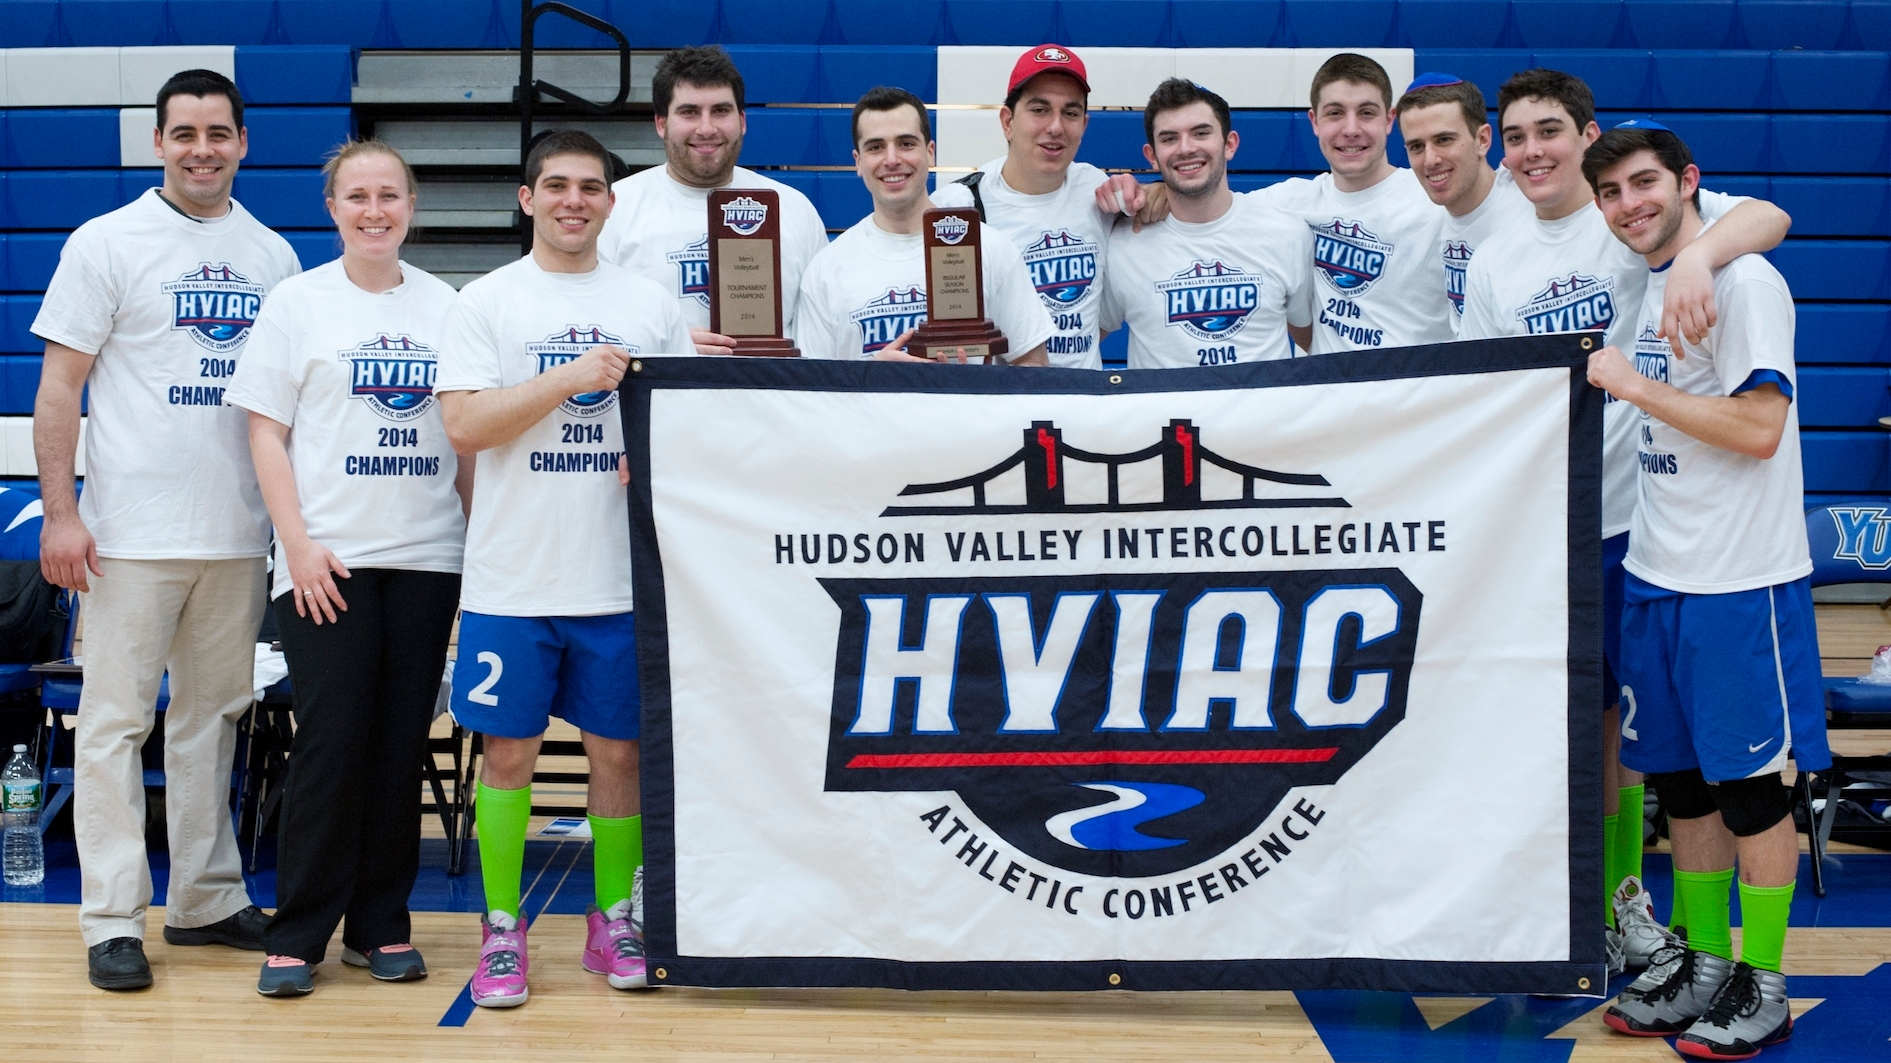 Jacqui Dauphinais, second from left, was an assistant coach last season for the the Yeshiva University men's volleyball team that won its conference championship. (Adena Stevens/Yeshiva University)